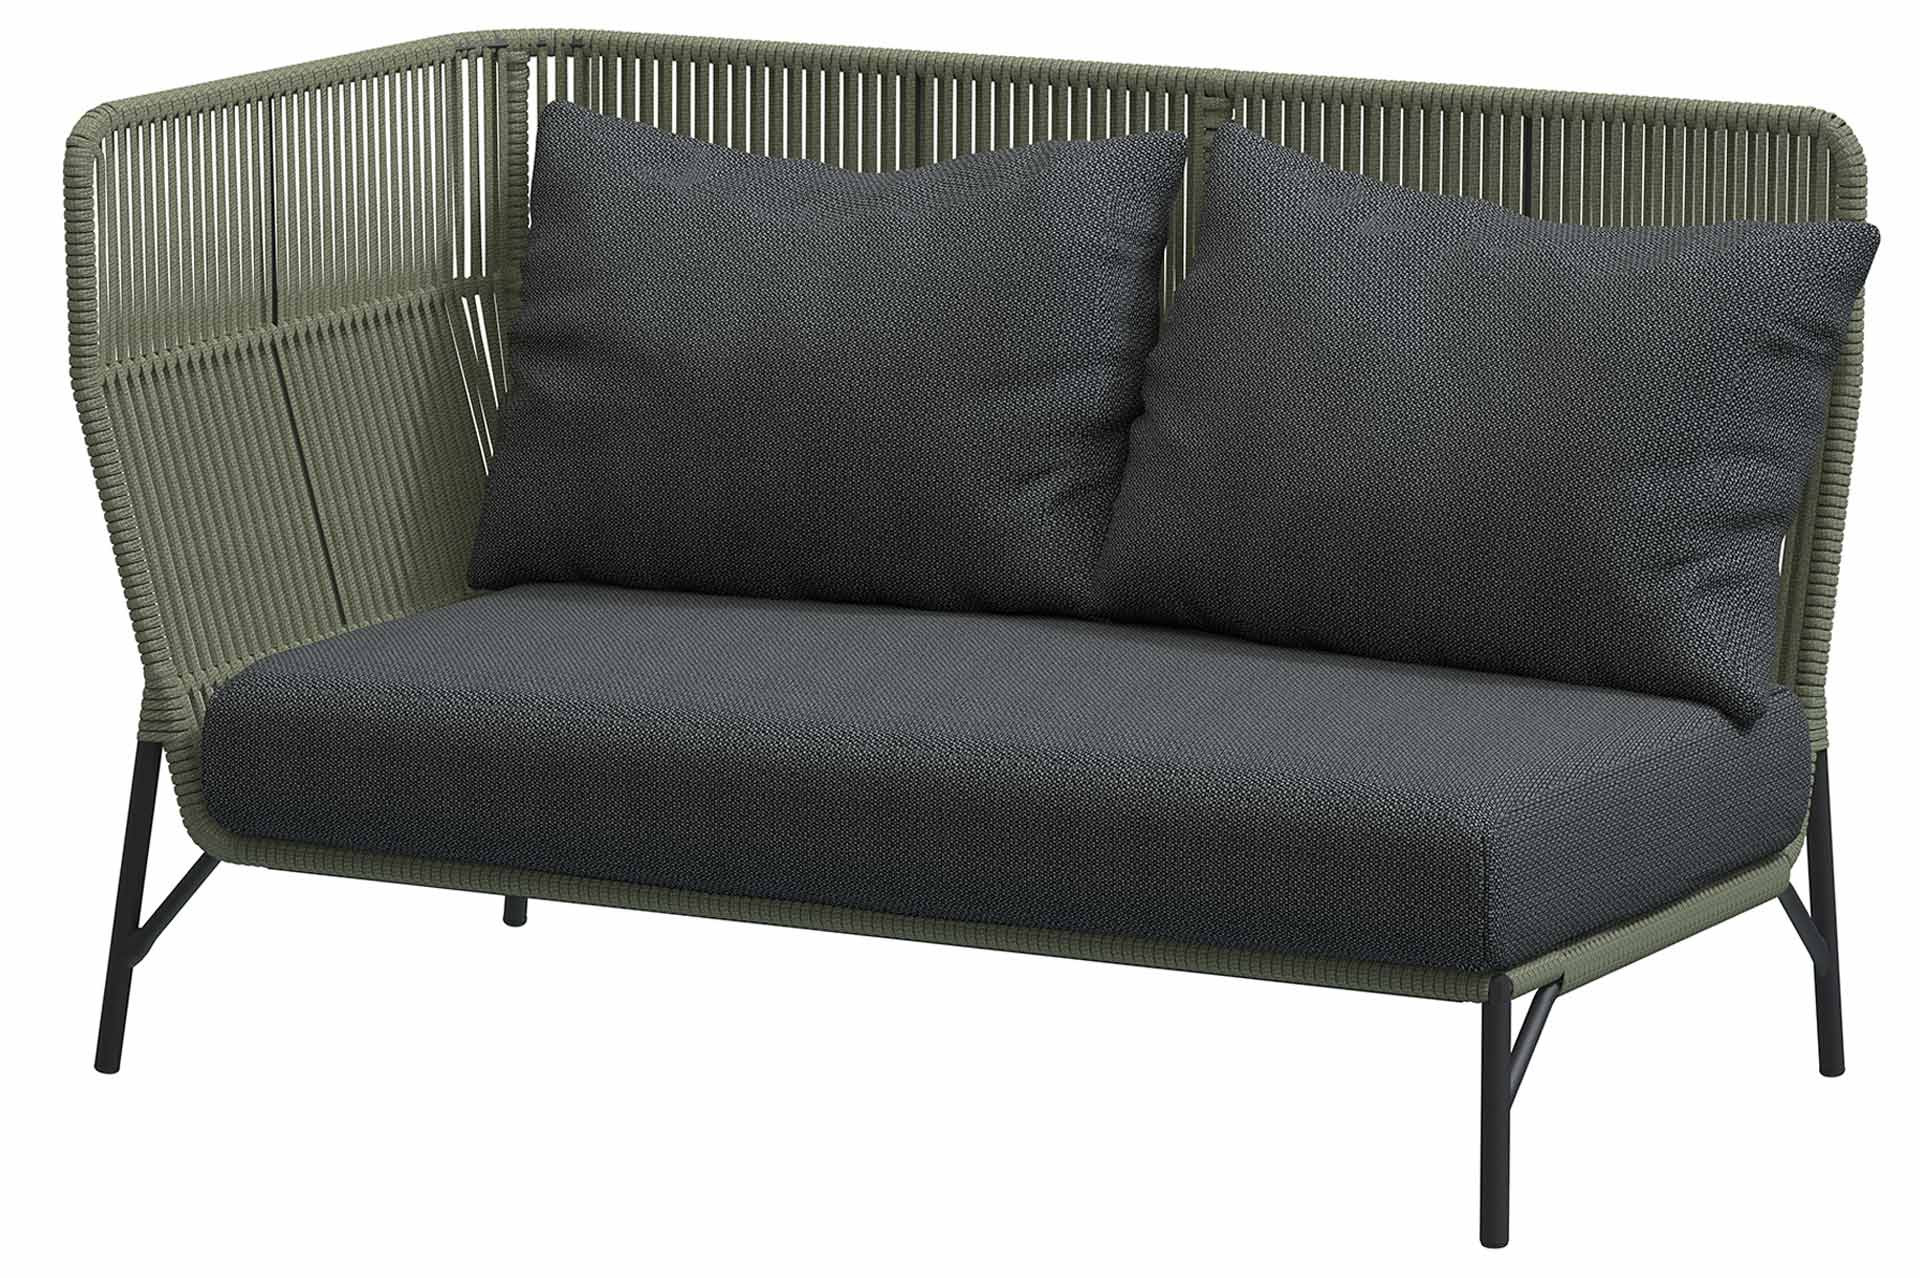 Altoro Modular 2 seater right arm Green with 3 cushions